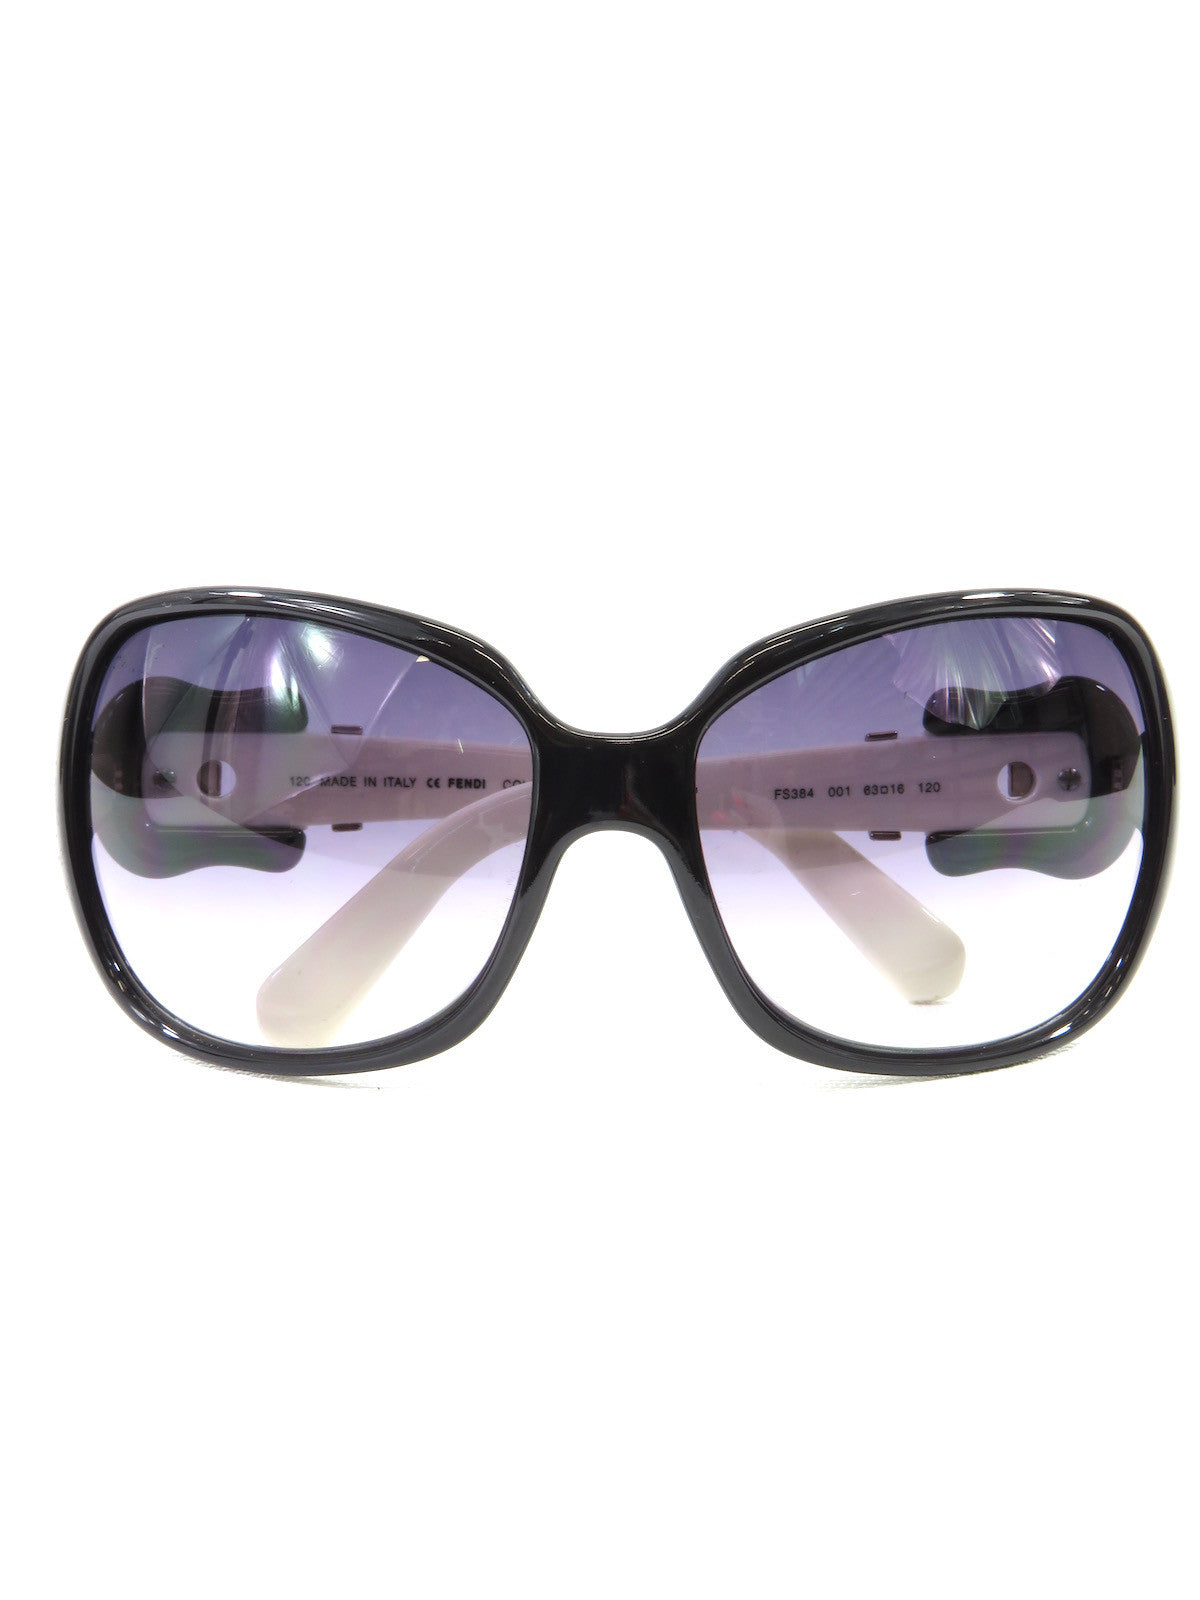 f294ae40a883 NEW! FENDI Women Black Off White Iconic Buckle Oversized Square Sungla